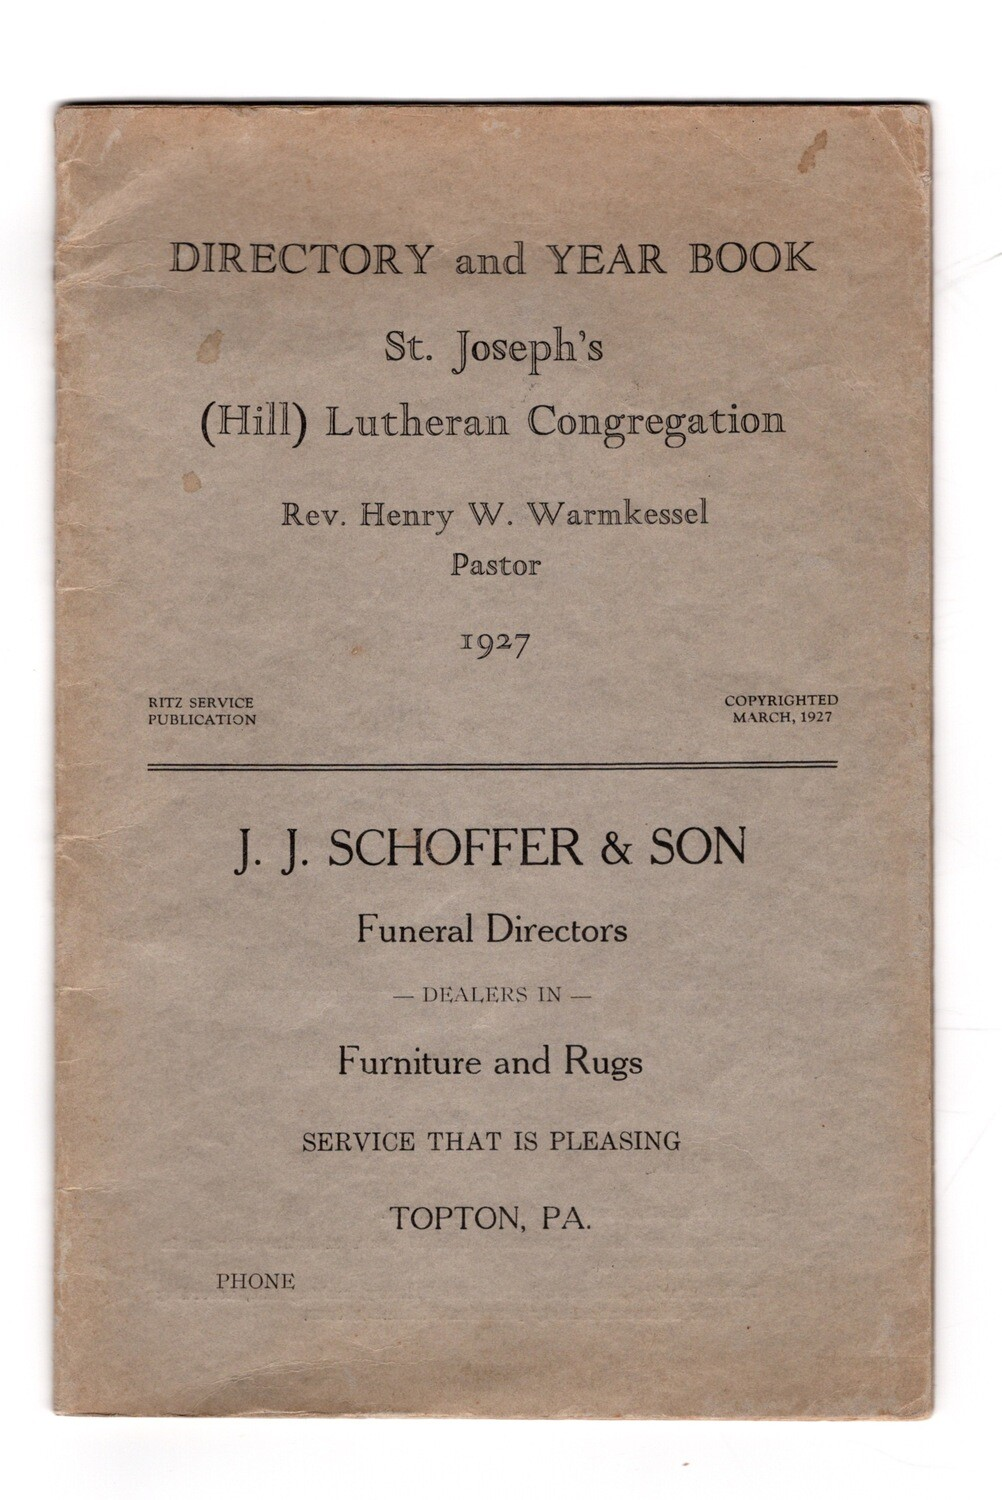 Directory and Year Book St. Joseph's Lutheran Congregation 1927